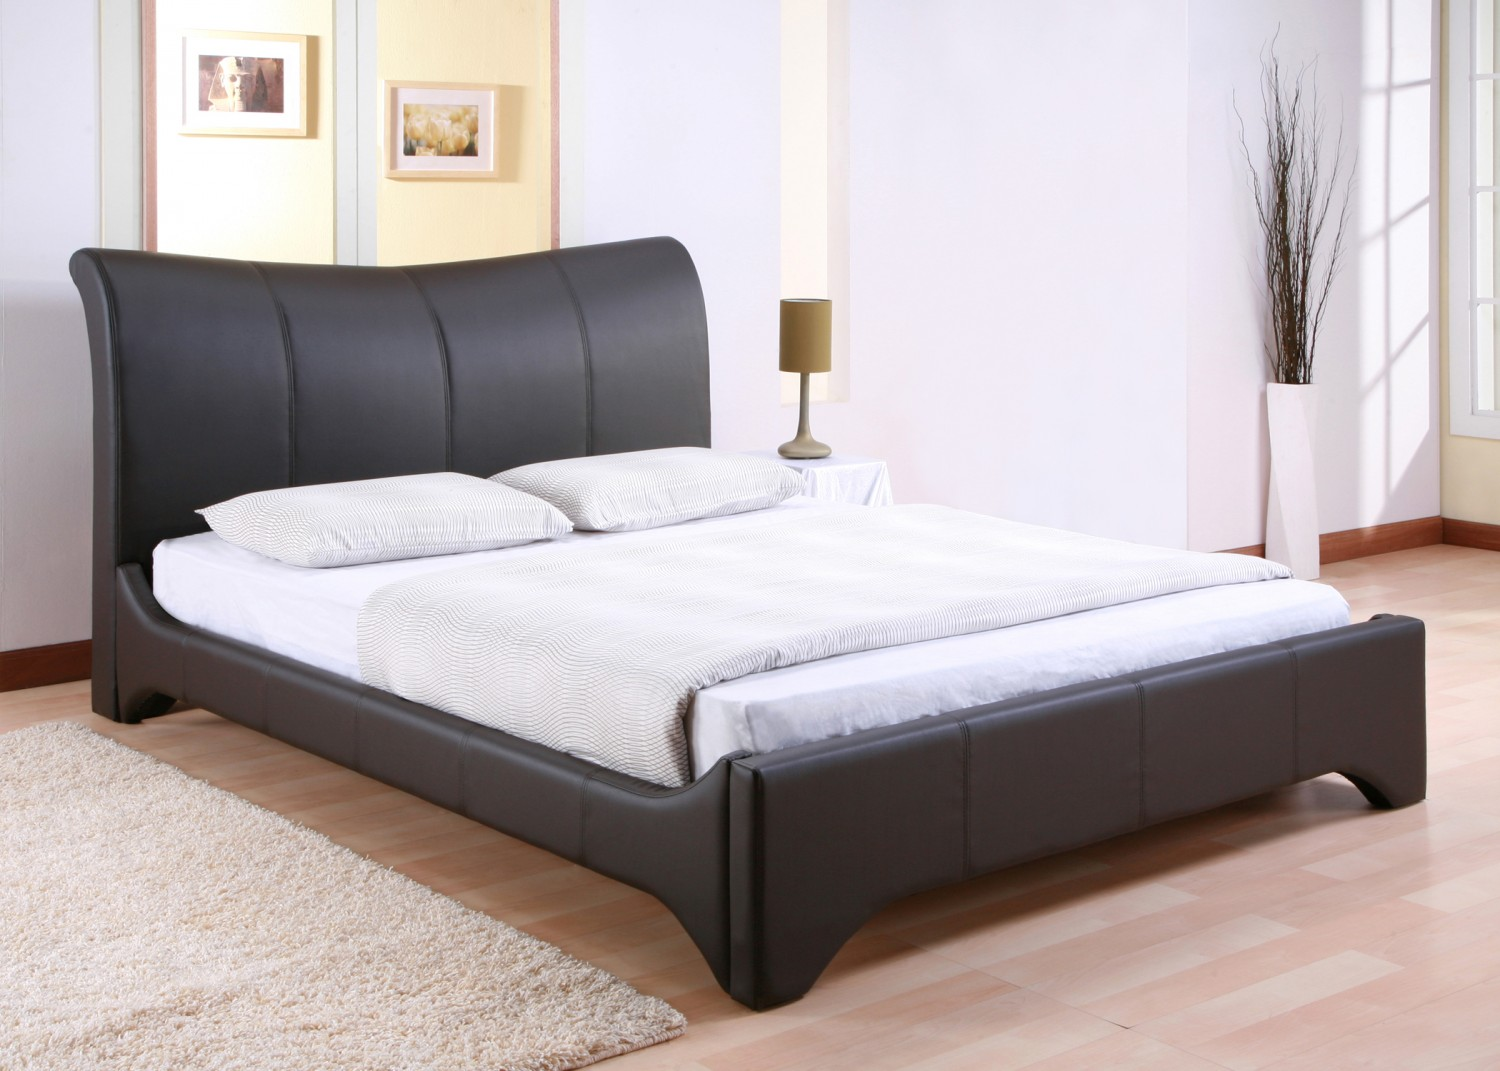 Mesmerizing Queen Size Platform Bed for Bedroom: Wonderful Queen Size Platform Bed With Brown Rugs